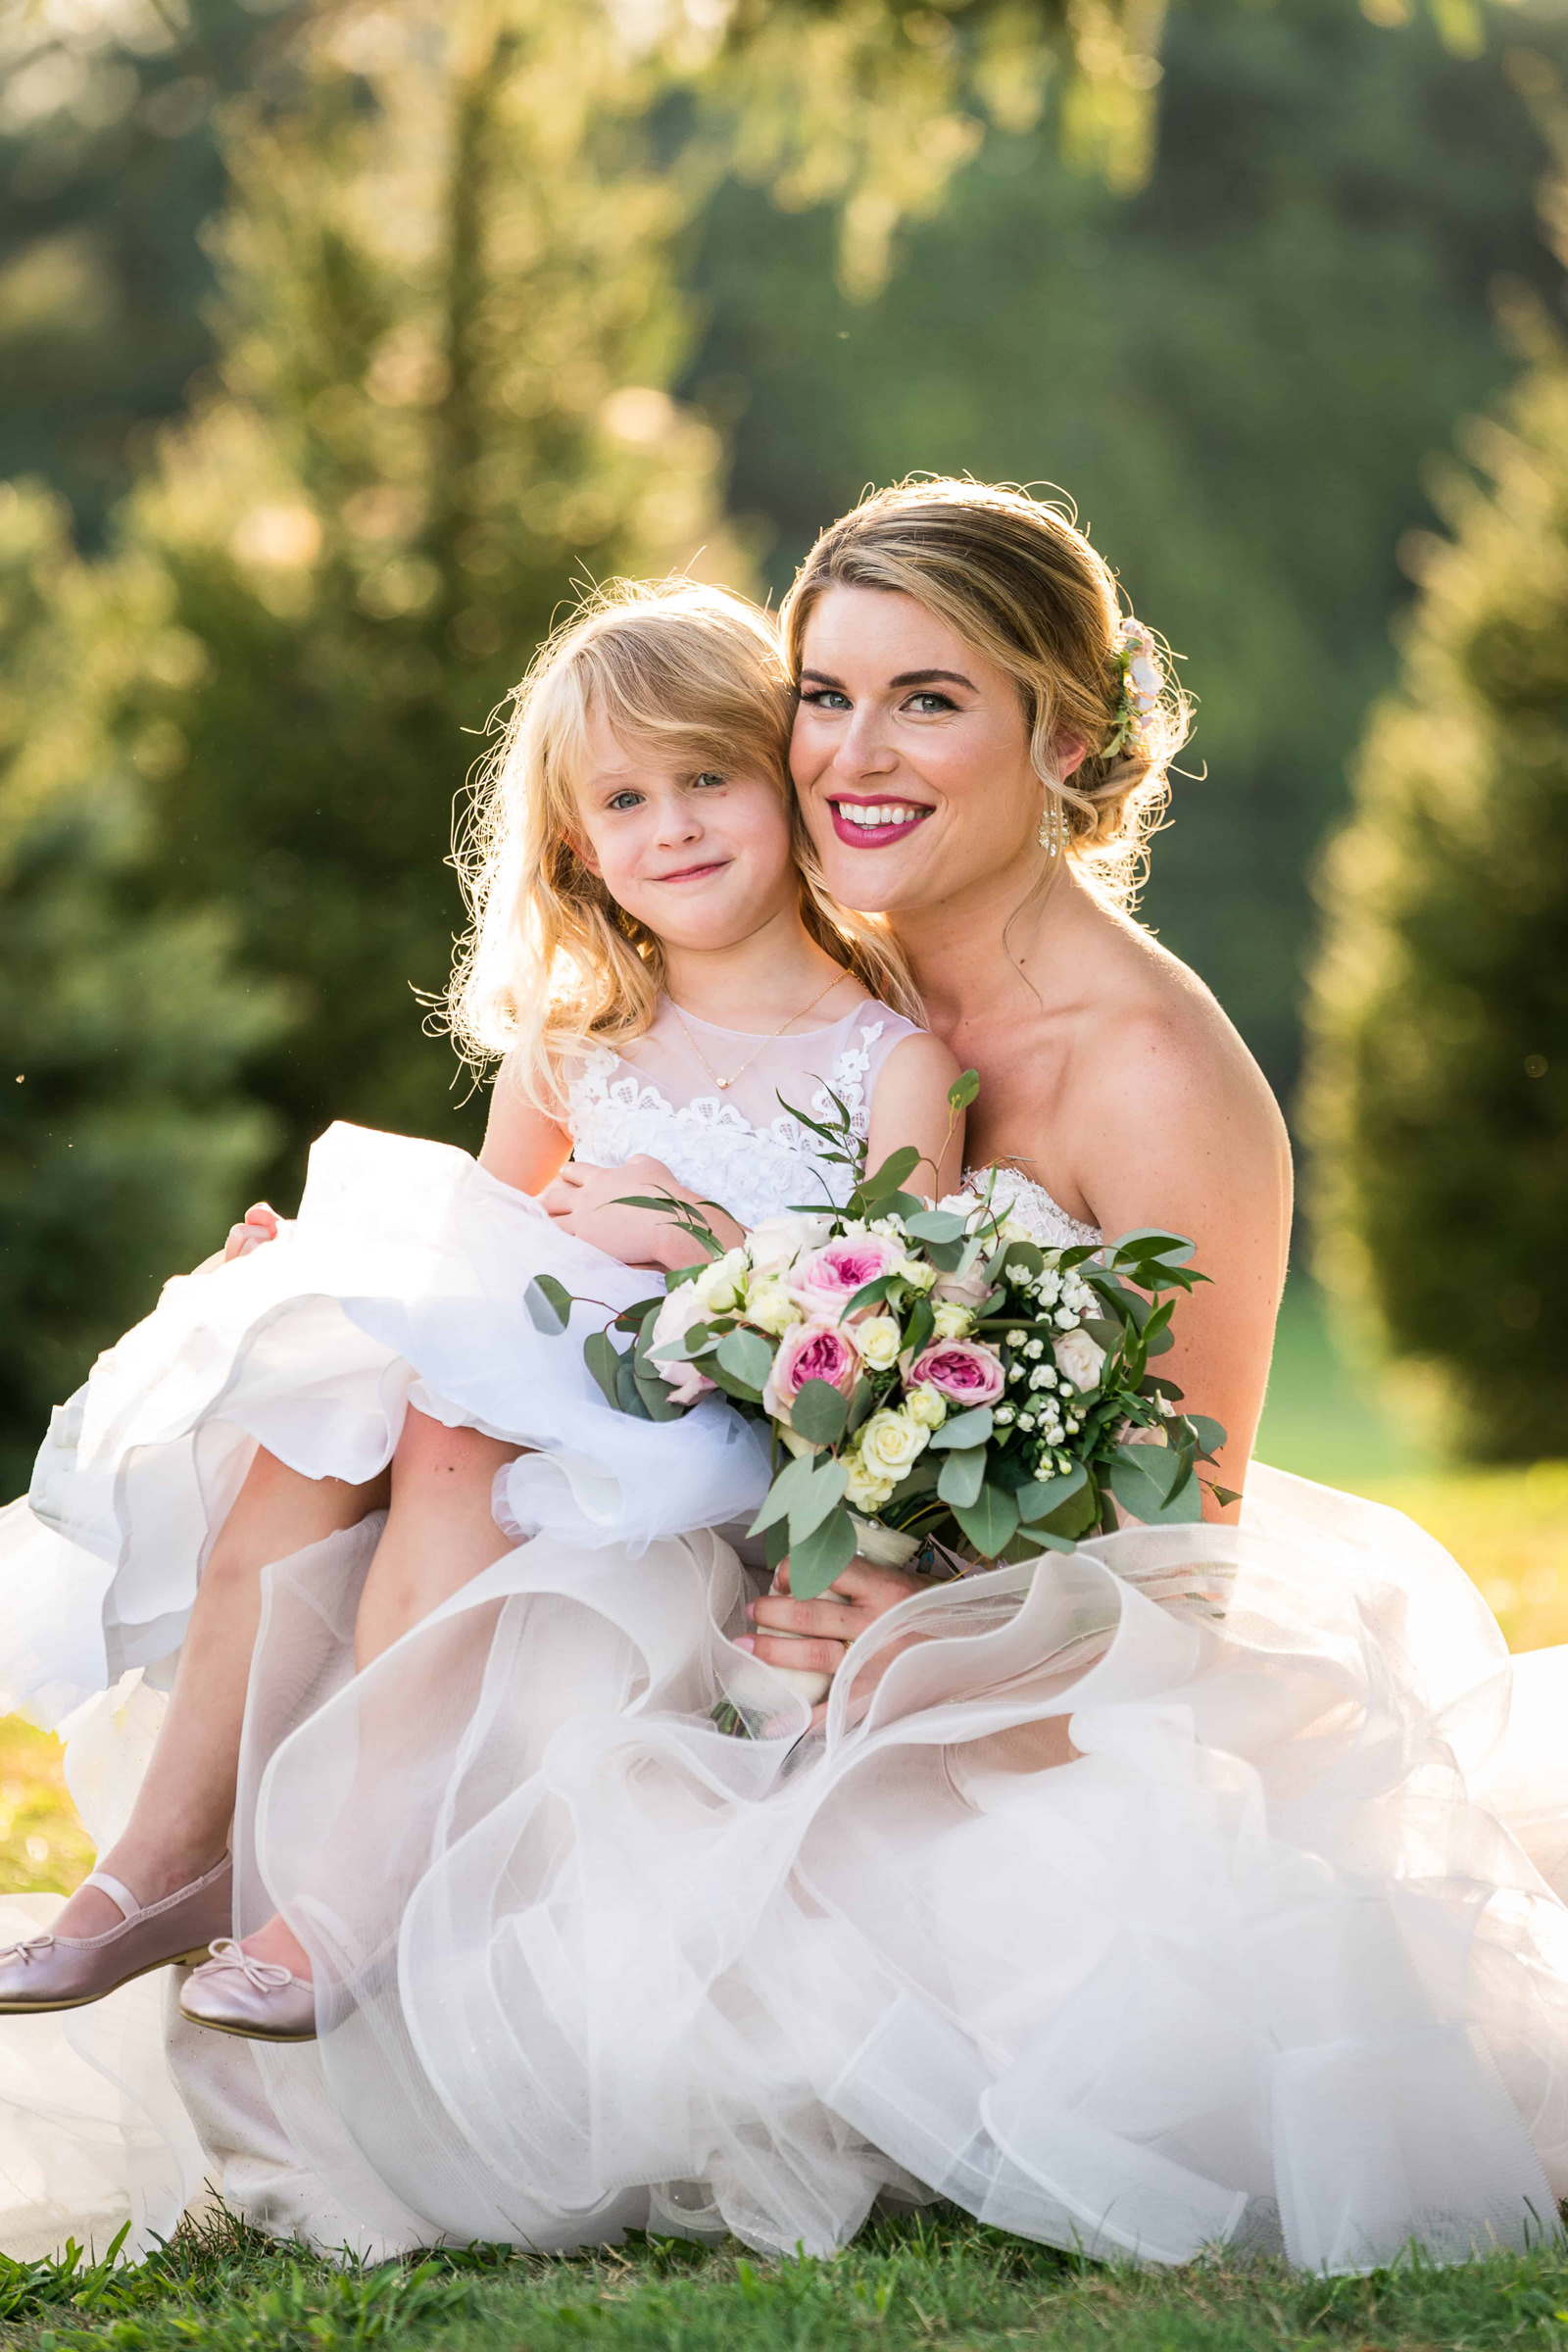 bride-portrait-with-girl-fuller-photography